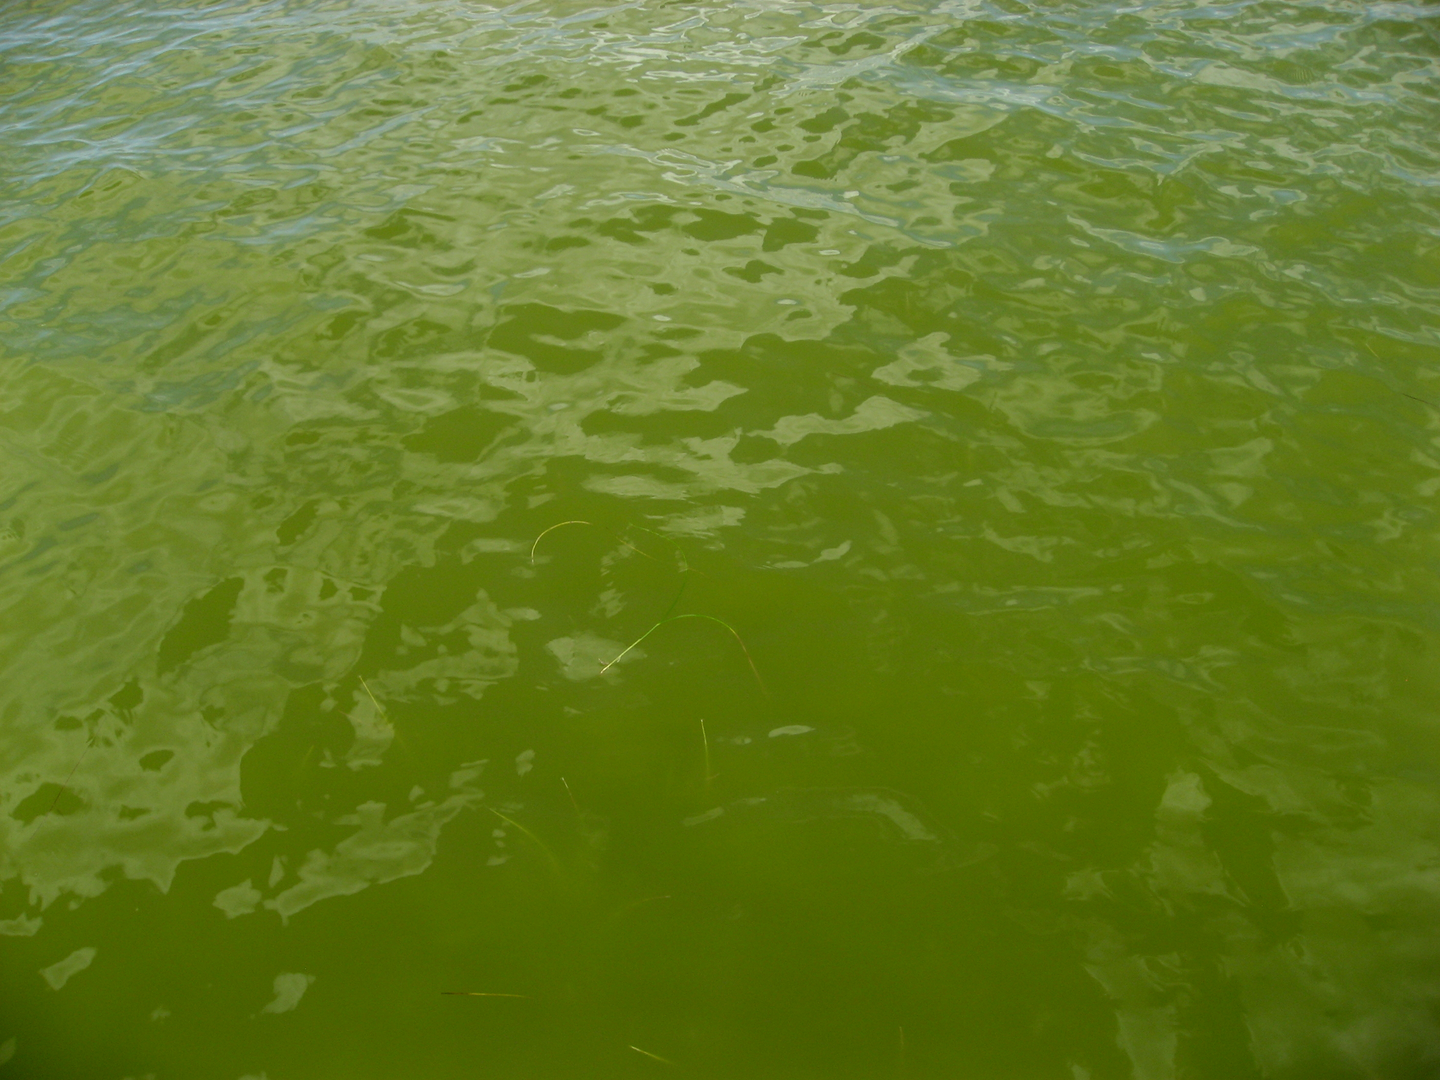 Discolored water in the Indian River Lagoon was caused by algae.